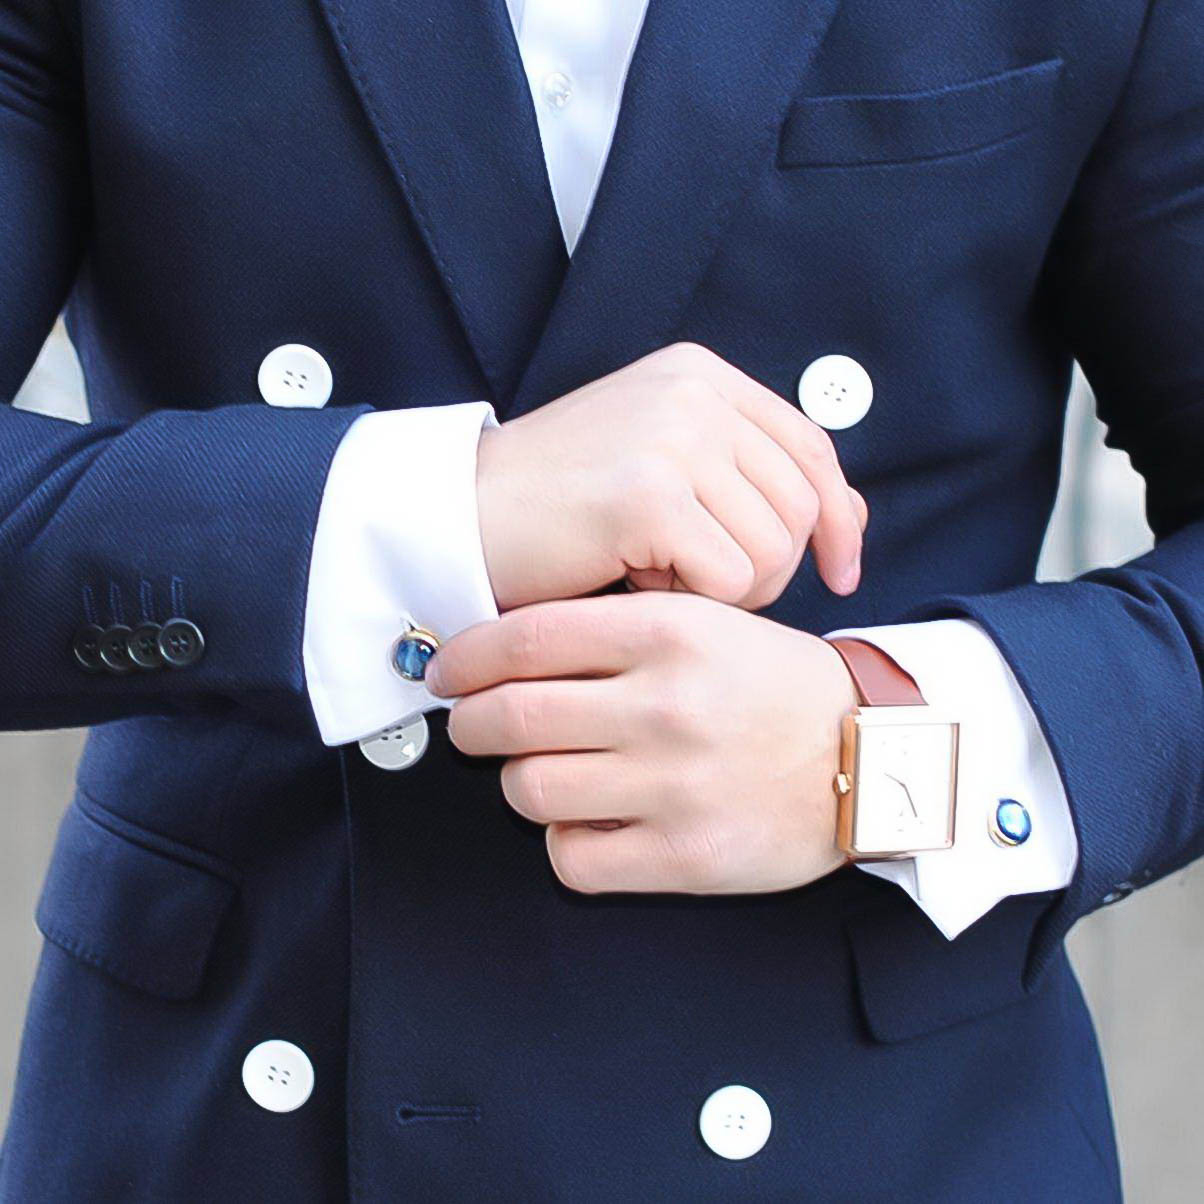 Umit Obeyd (@umitobeyd) with Elite & Luck Cufflinks